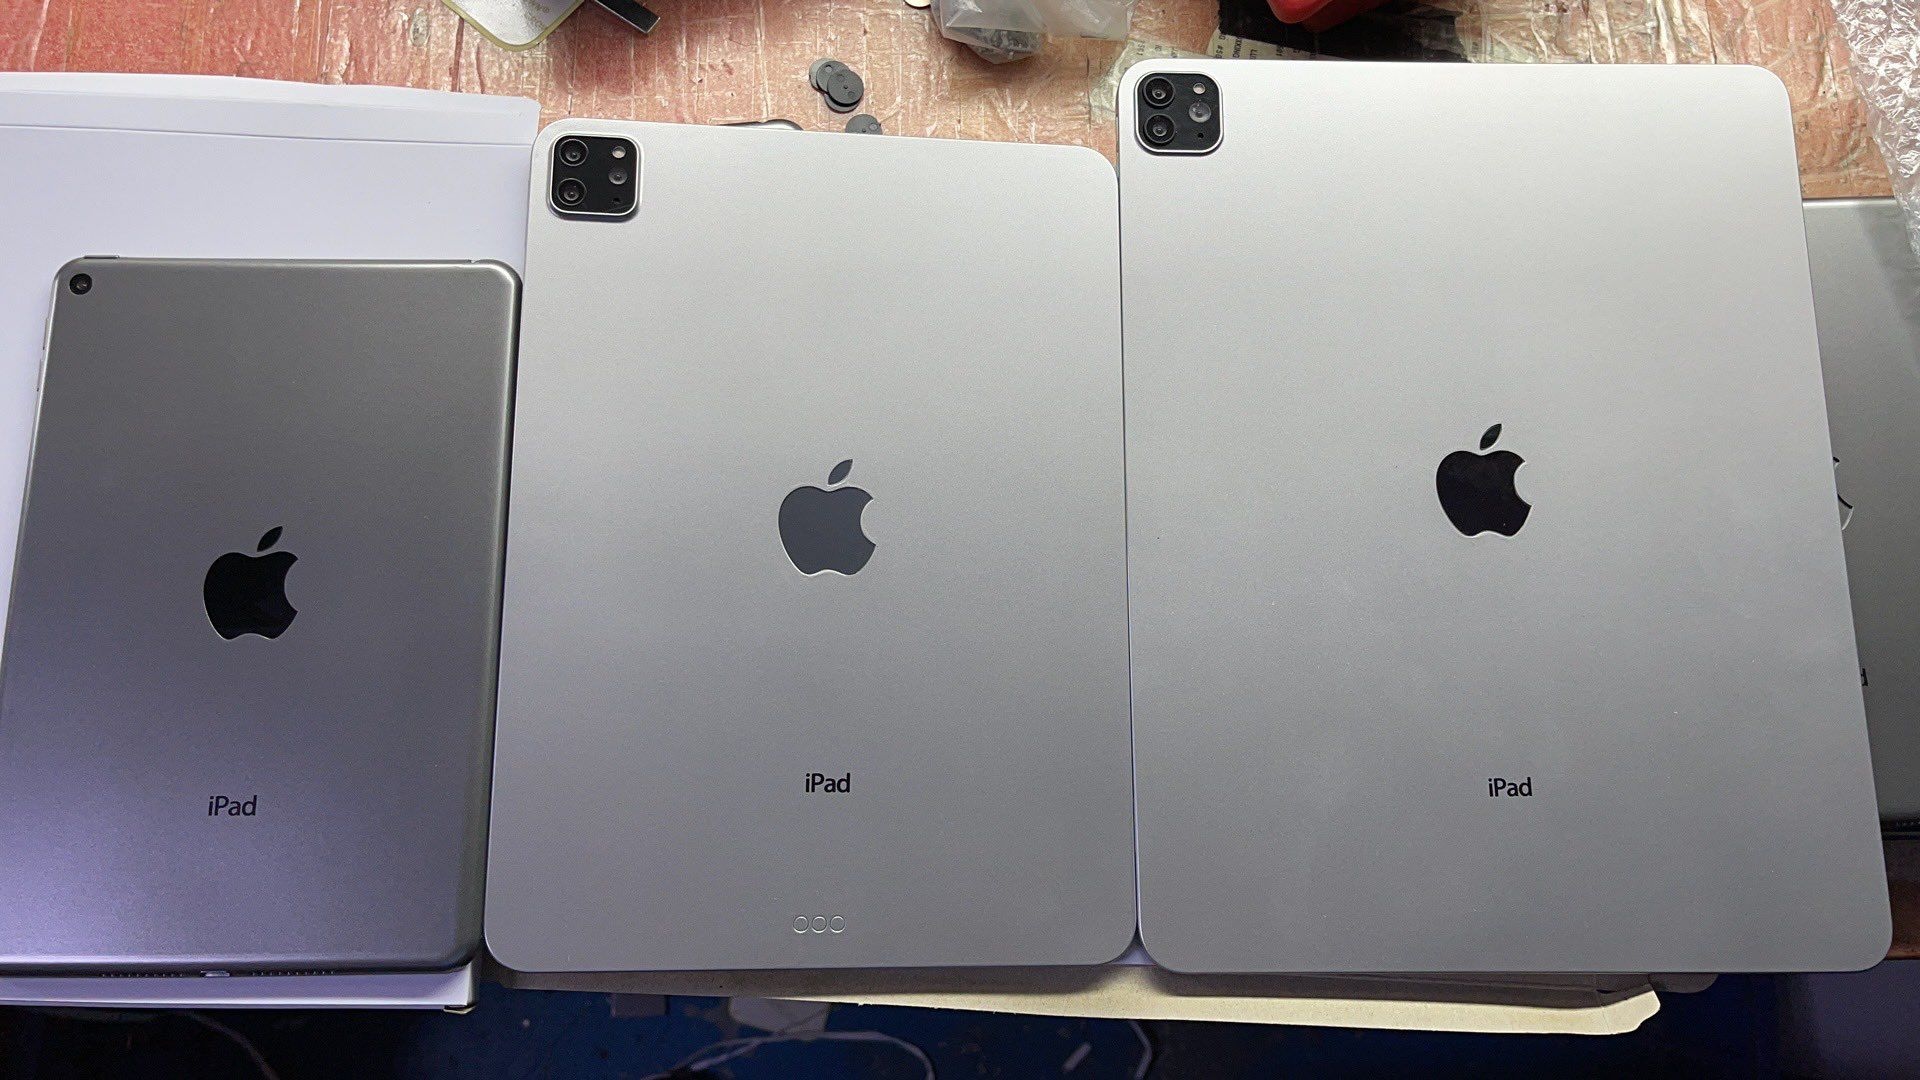 photo of Leaked Dummy Units Show iPad Mini 6 With Thick Bezels and Home Button, New iPad Pro Models image